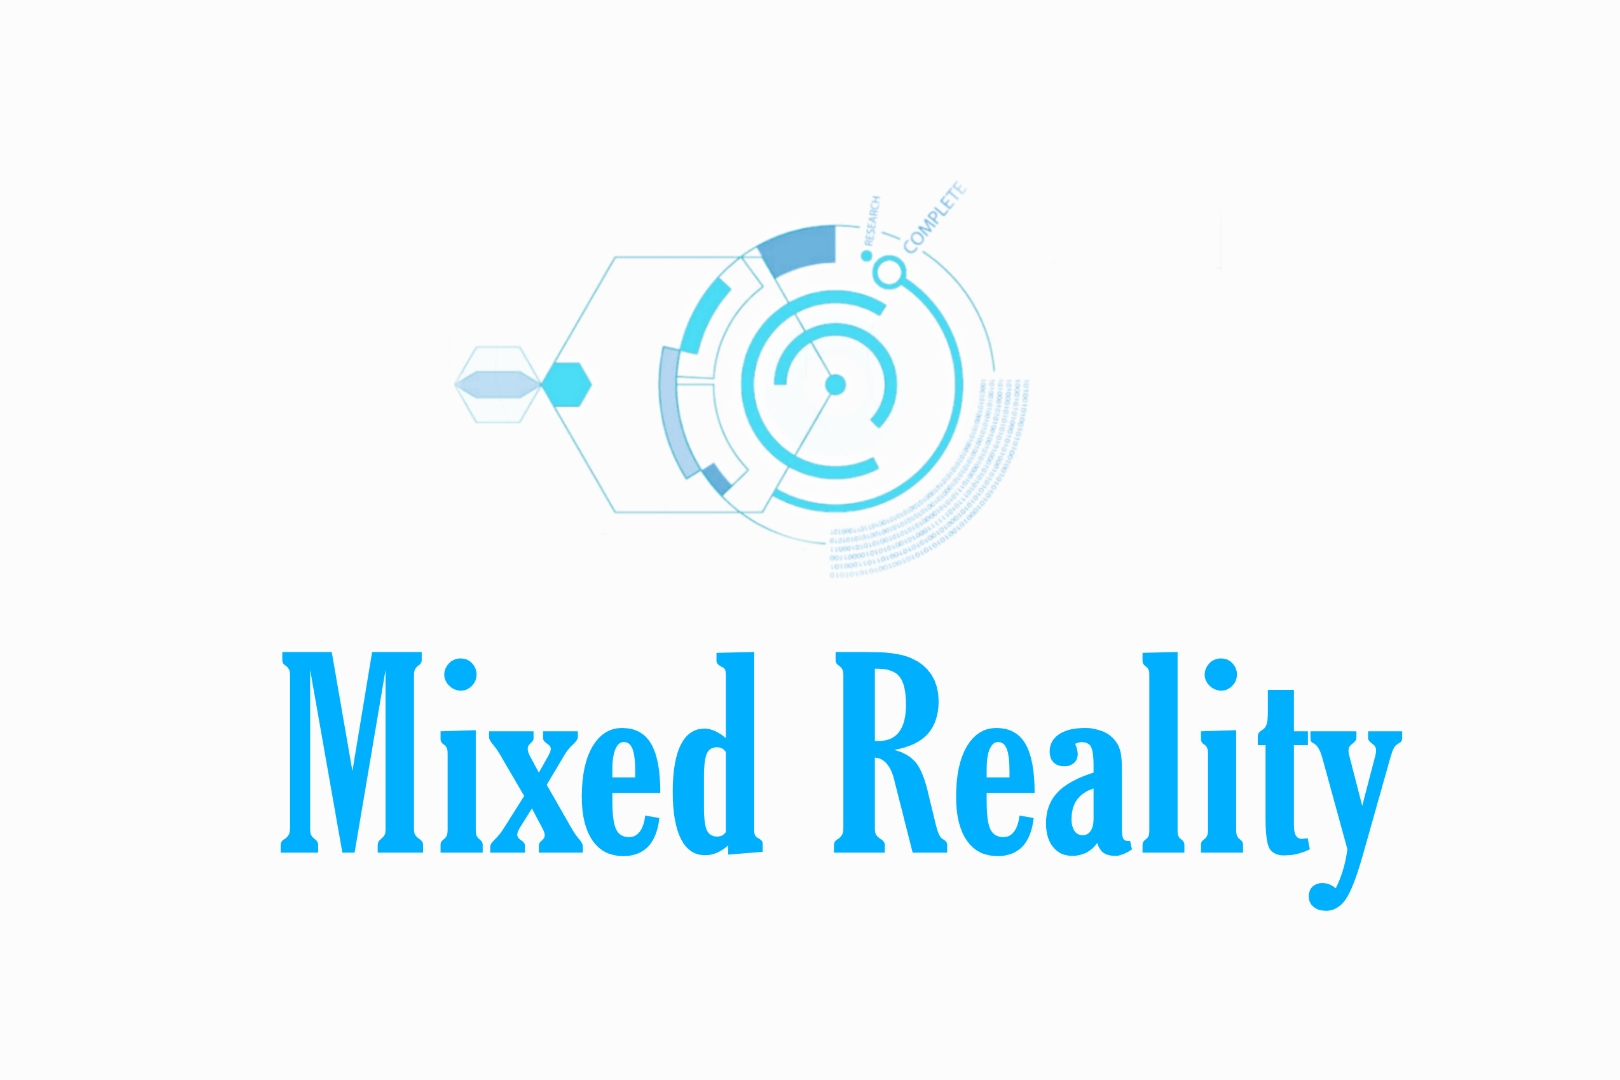 What is Mixed Reality? future's Immersive technology!